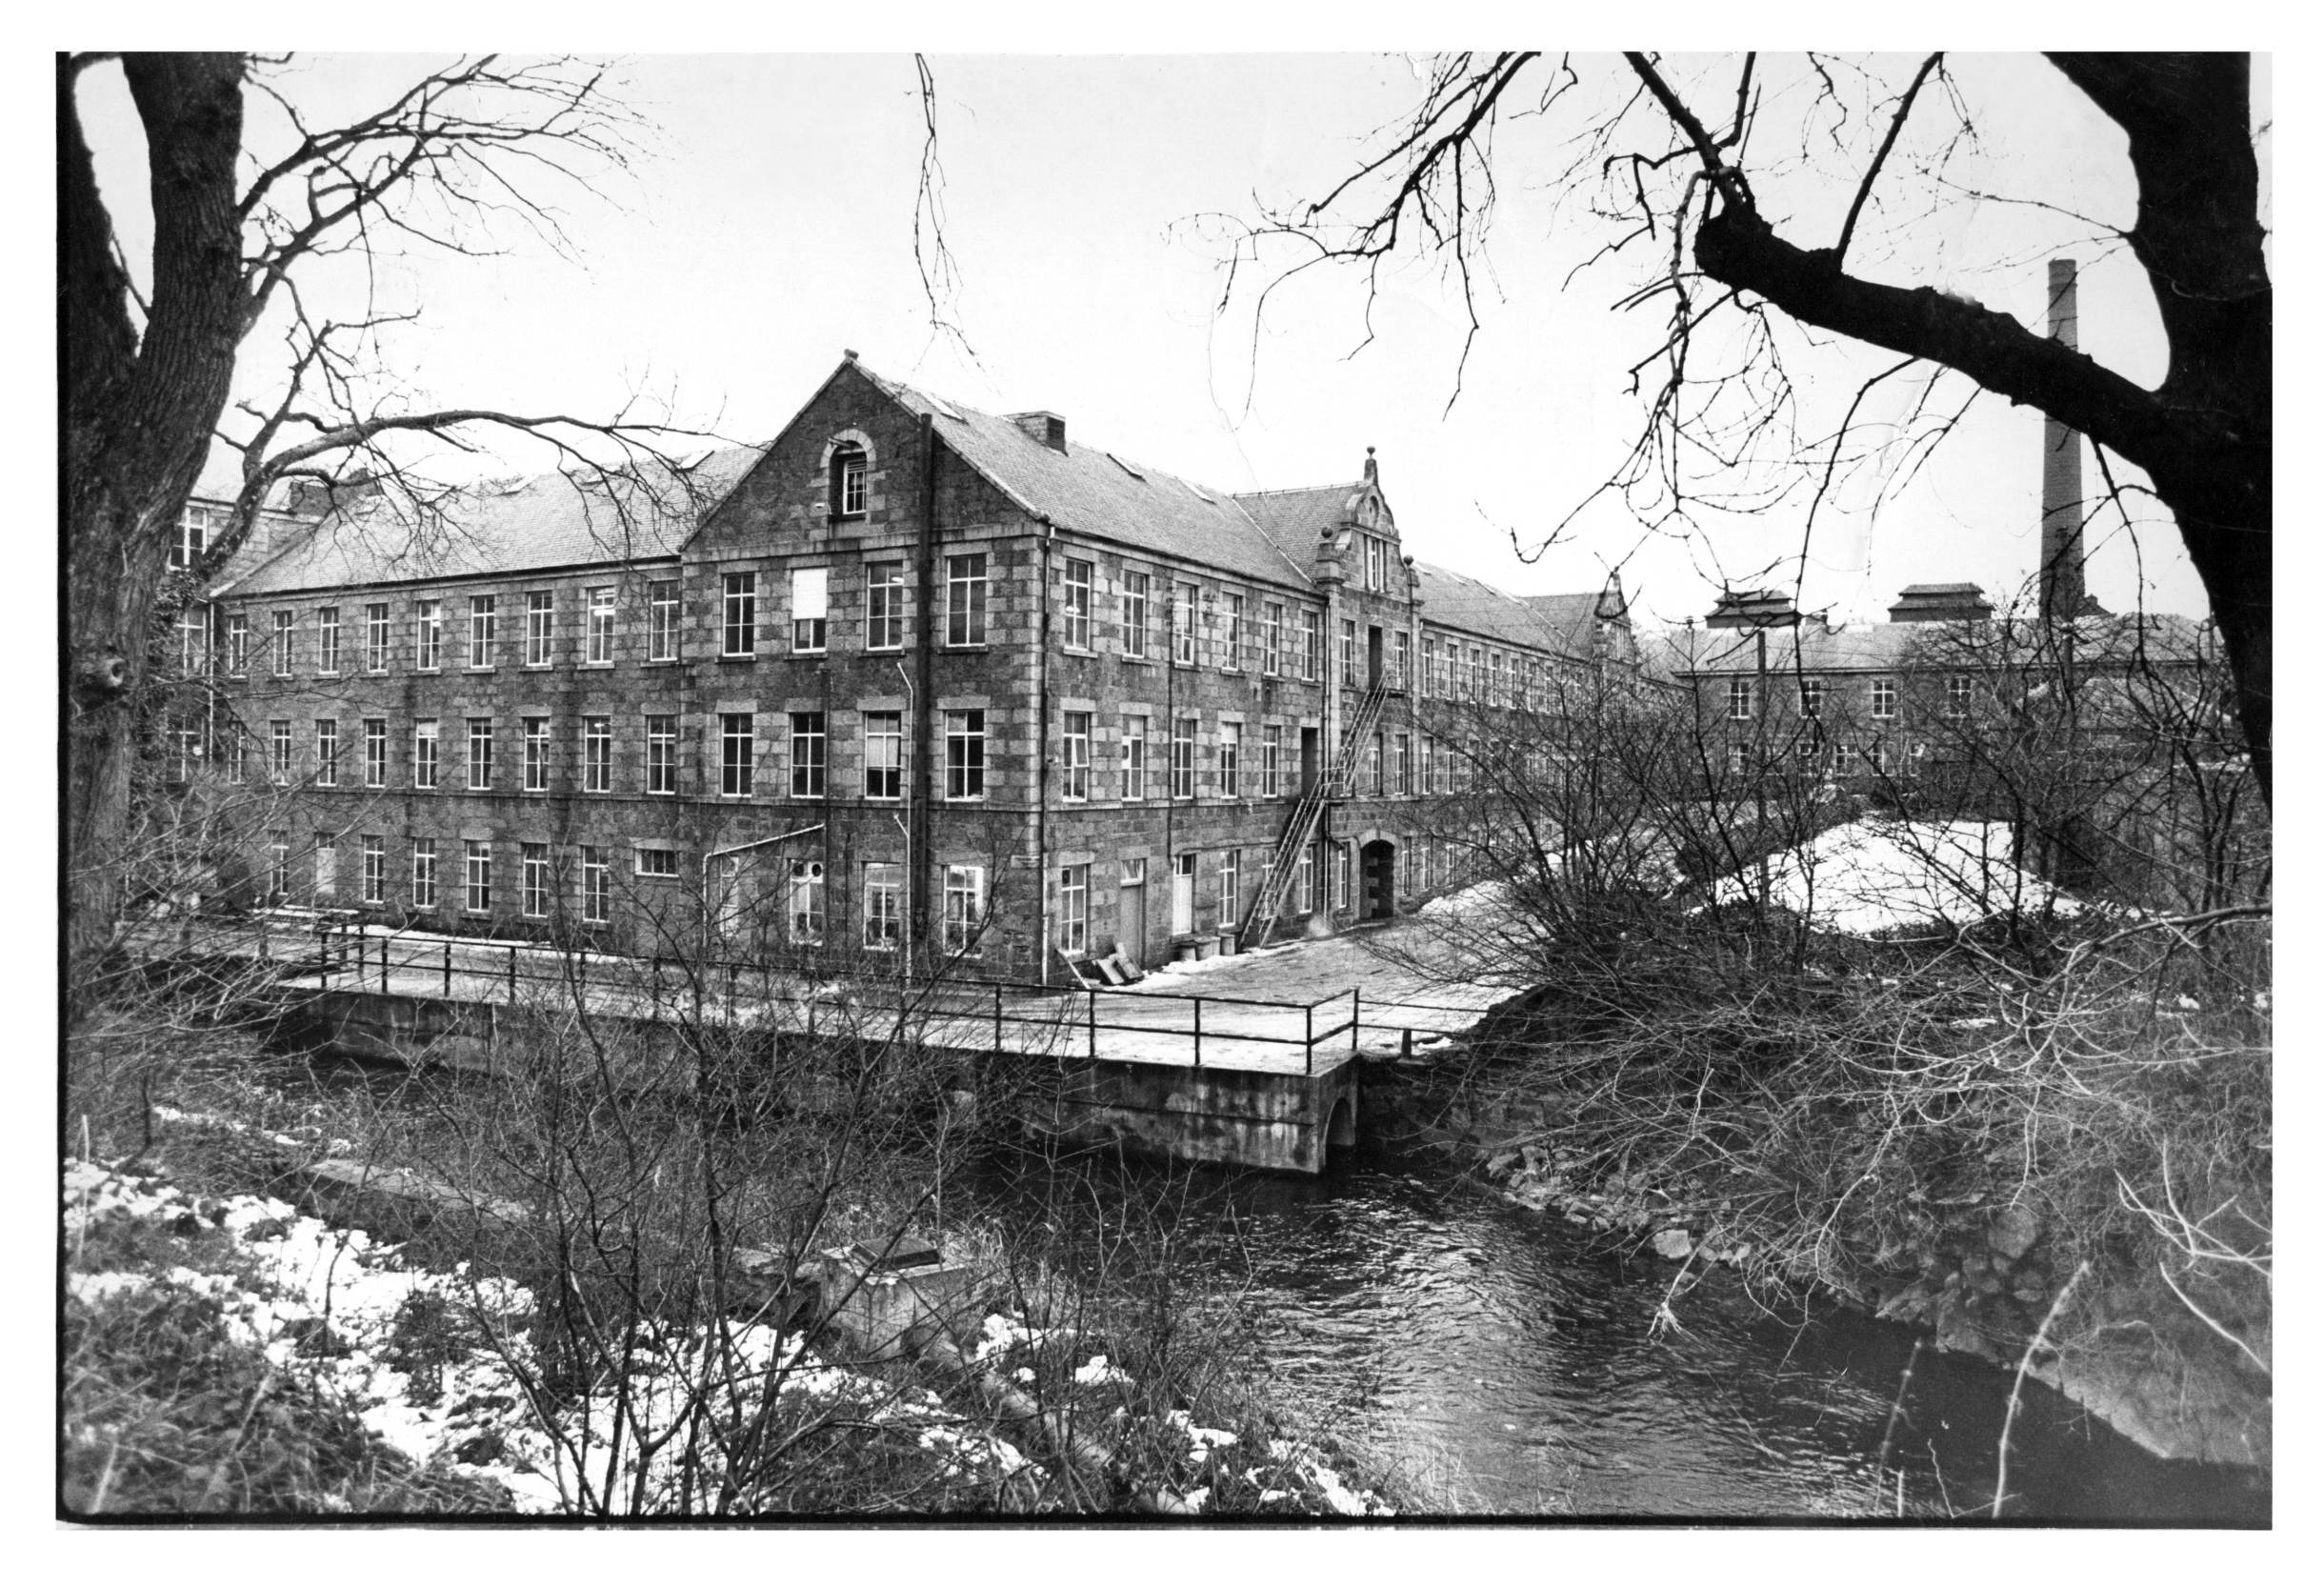 An exterior view of the Culter Paper Mill, which would not survive to the mid-80s